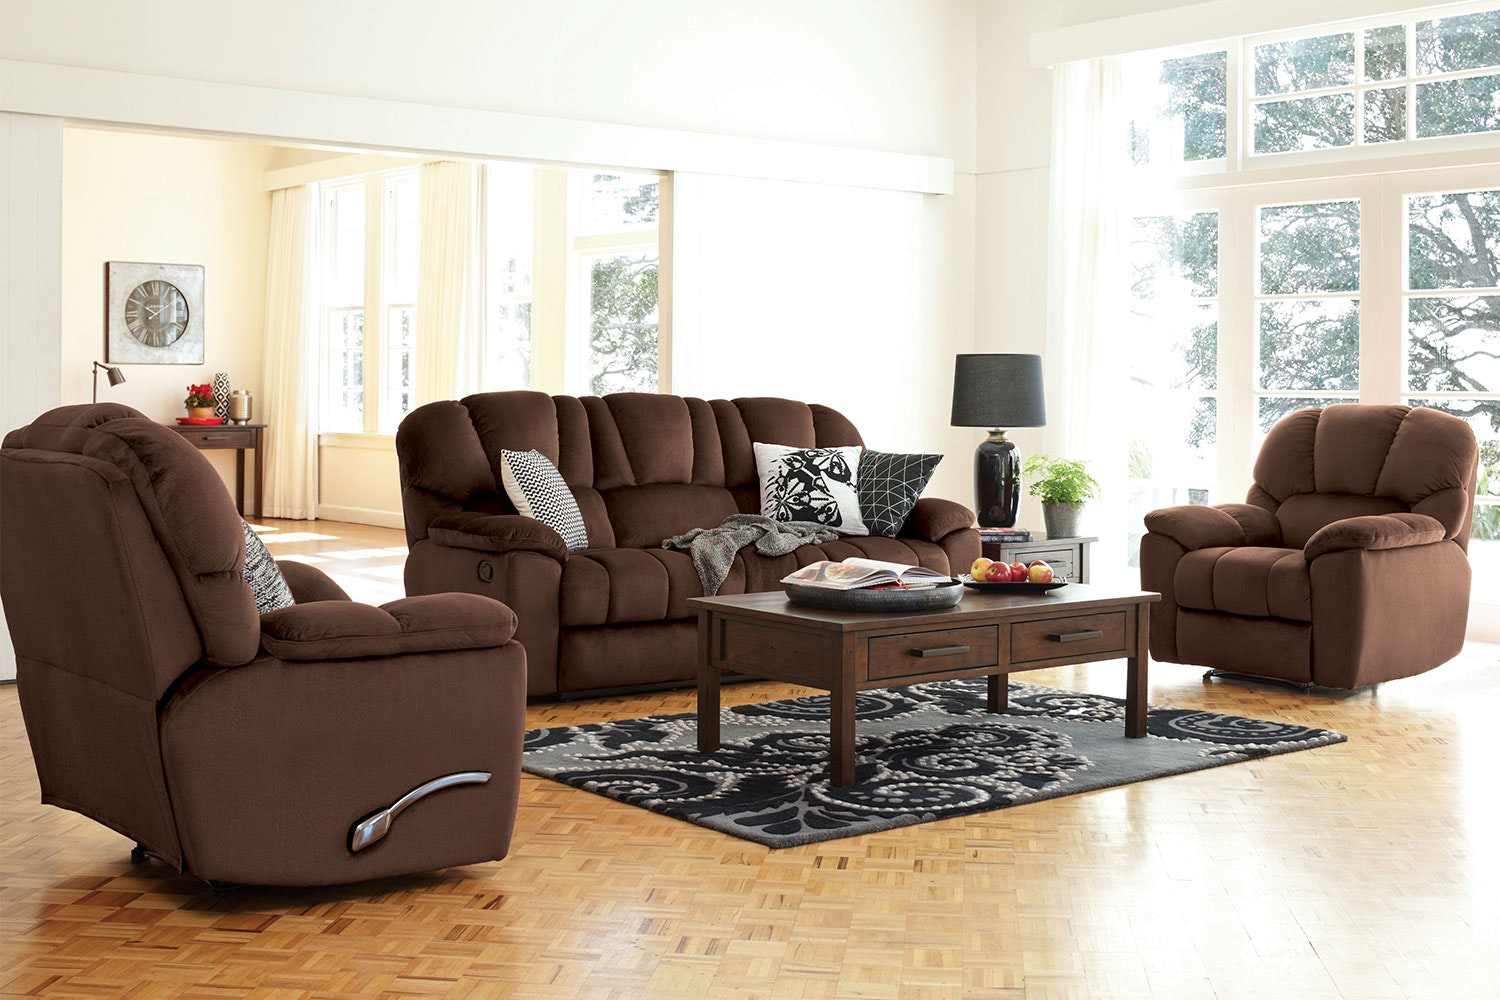 Scottland 3 Piece Fabric Recliner Lounge Suite by John Young Furniture - Truffle